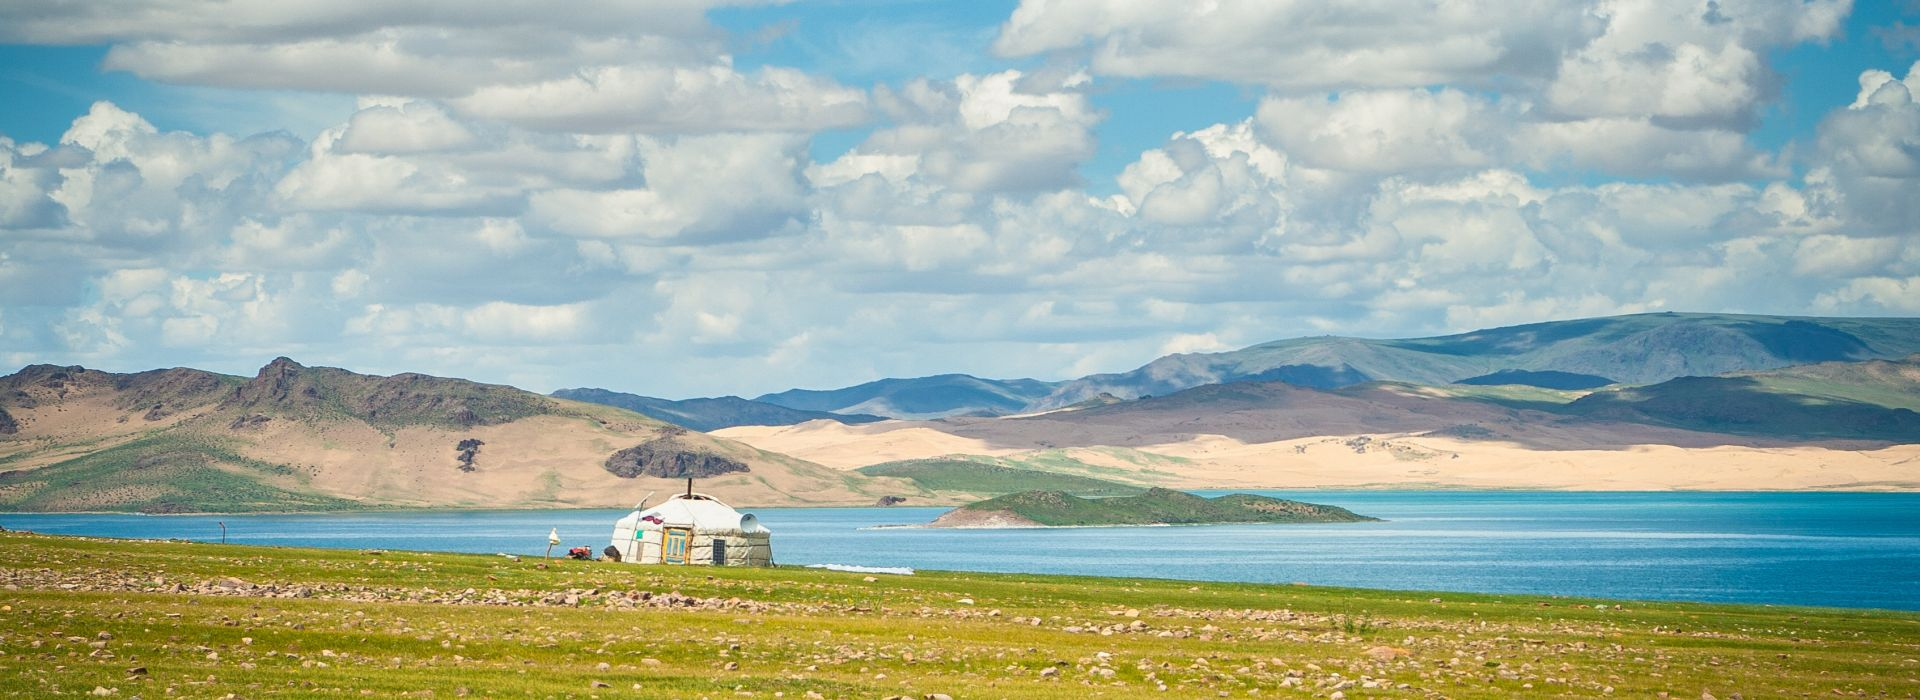 Travelling Mongolia Blog 9 Best Tour Operators And Travel Agencies In Mongolia